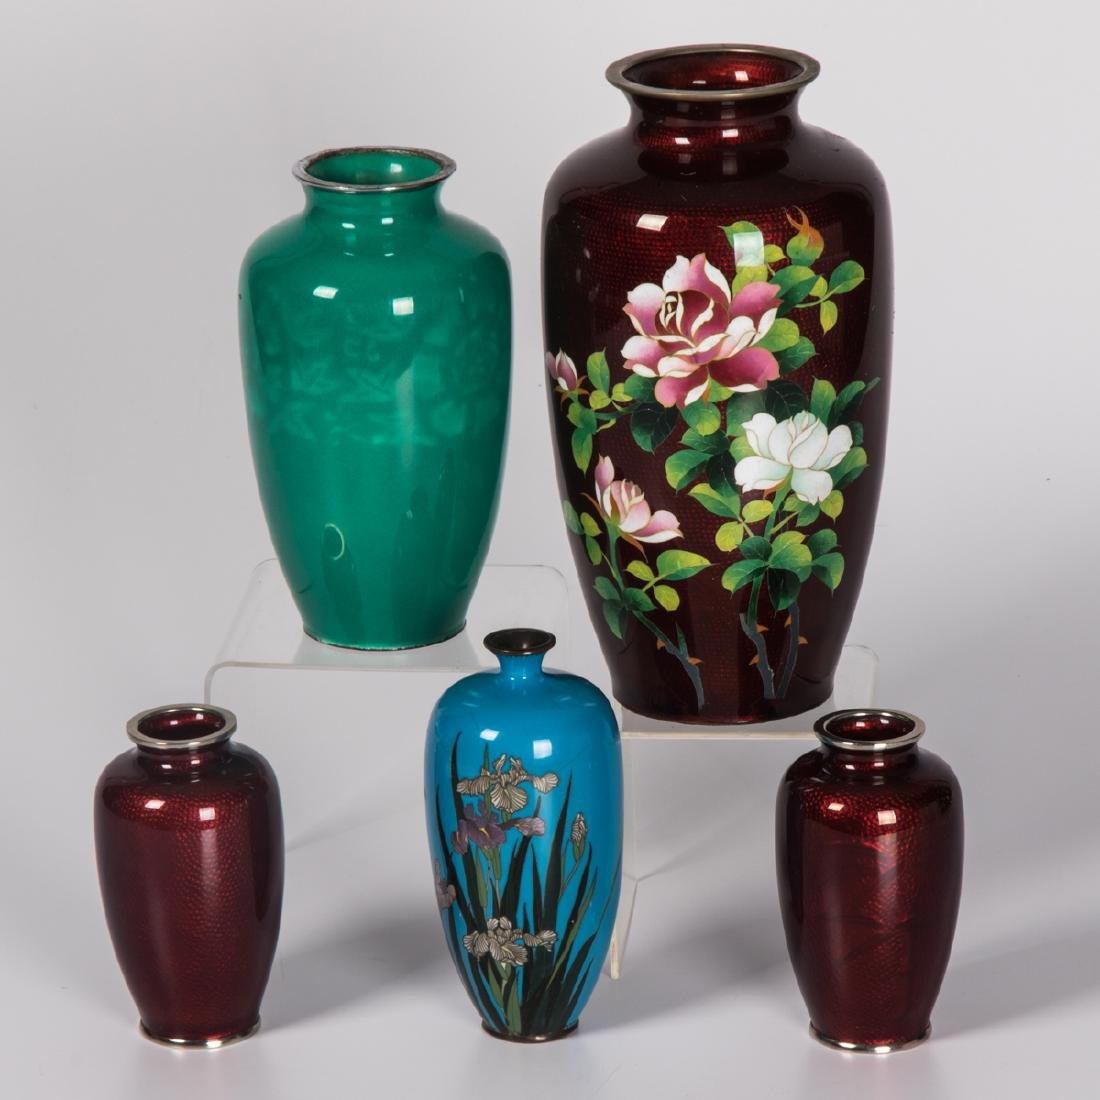 A Group of Five Japanese Enameled Vases of Varying